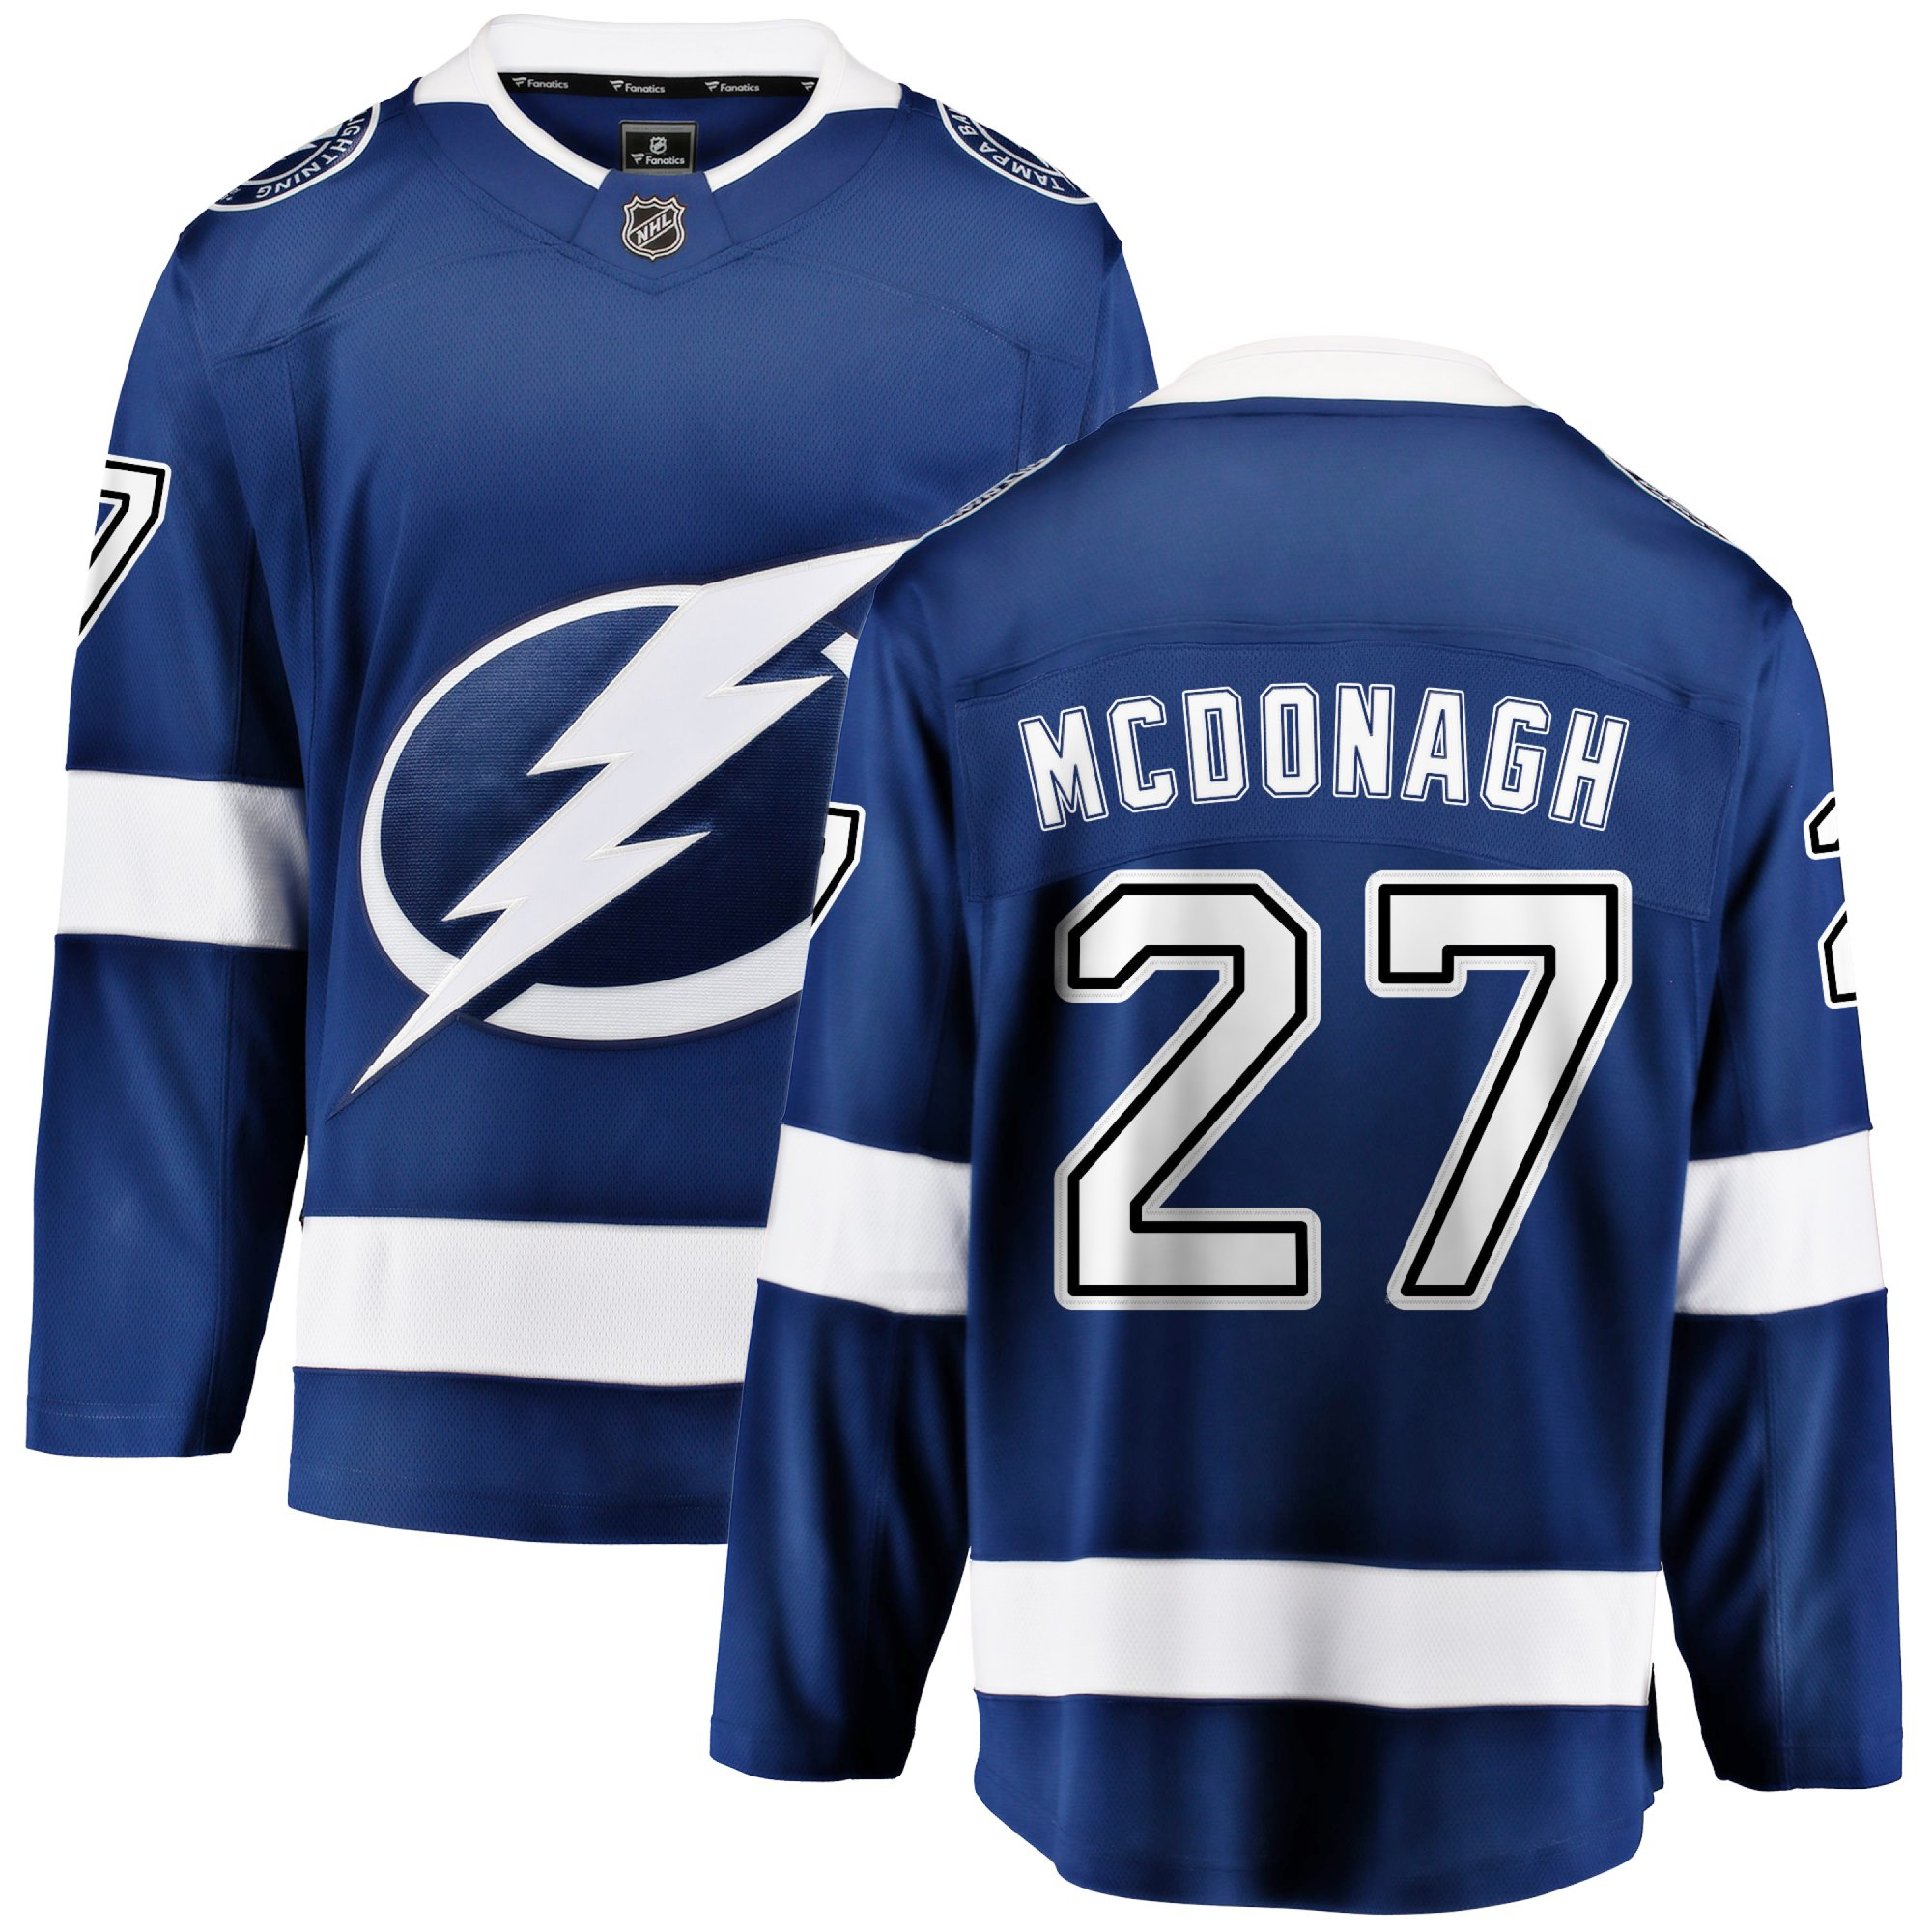 cheaper e4e94 7b1a9 Ryan McDonagh Tampa Bay Lightning NHL Fanatics Breakaway Home Jersey